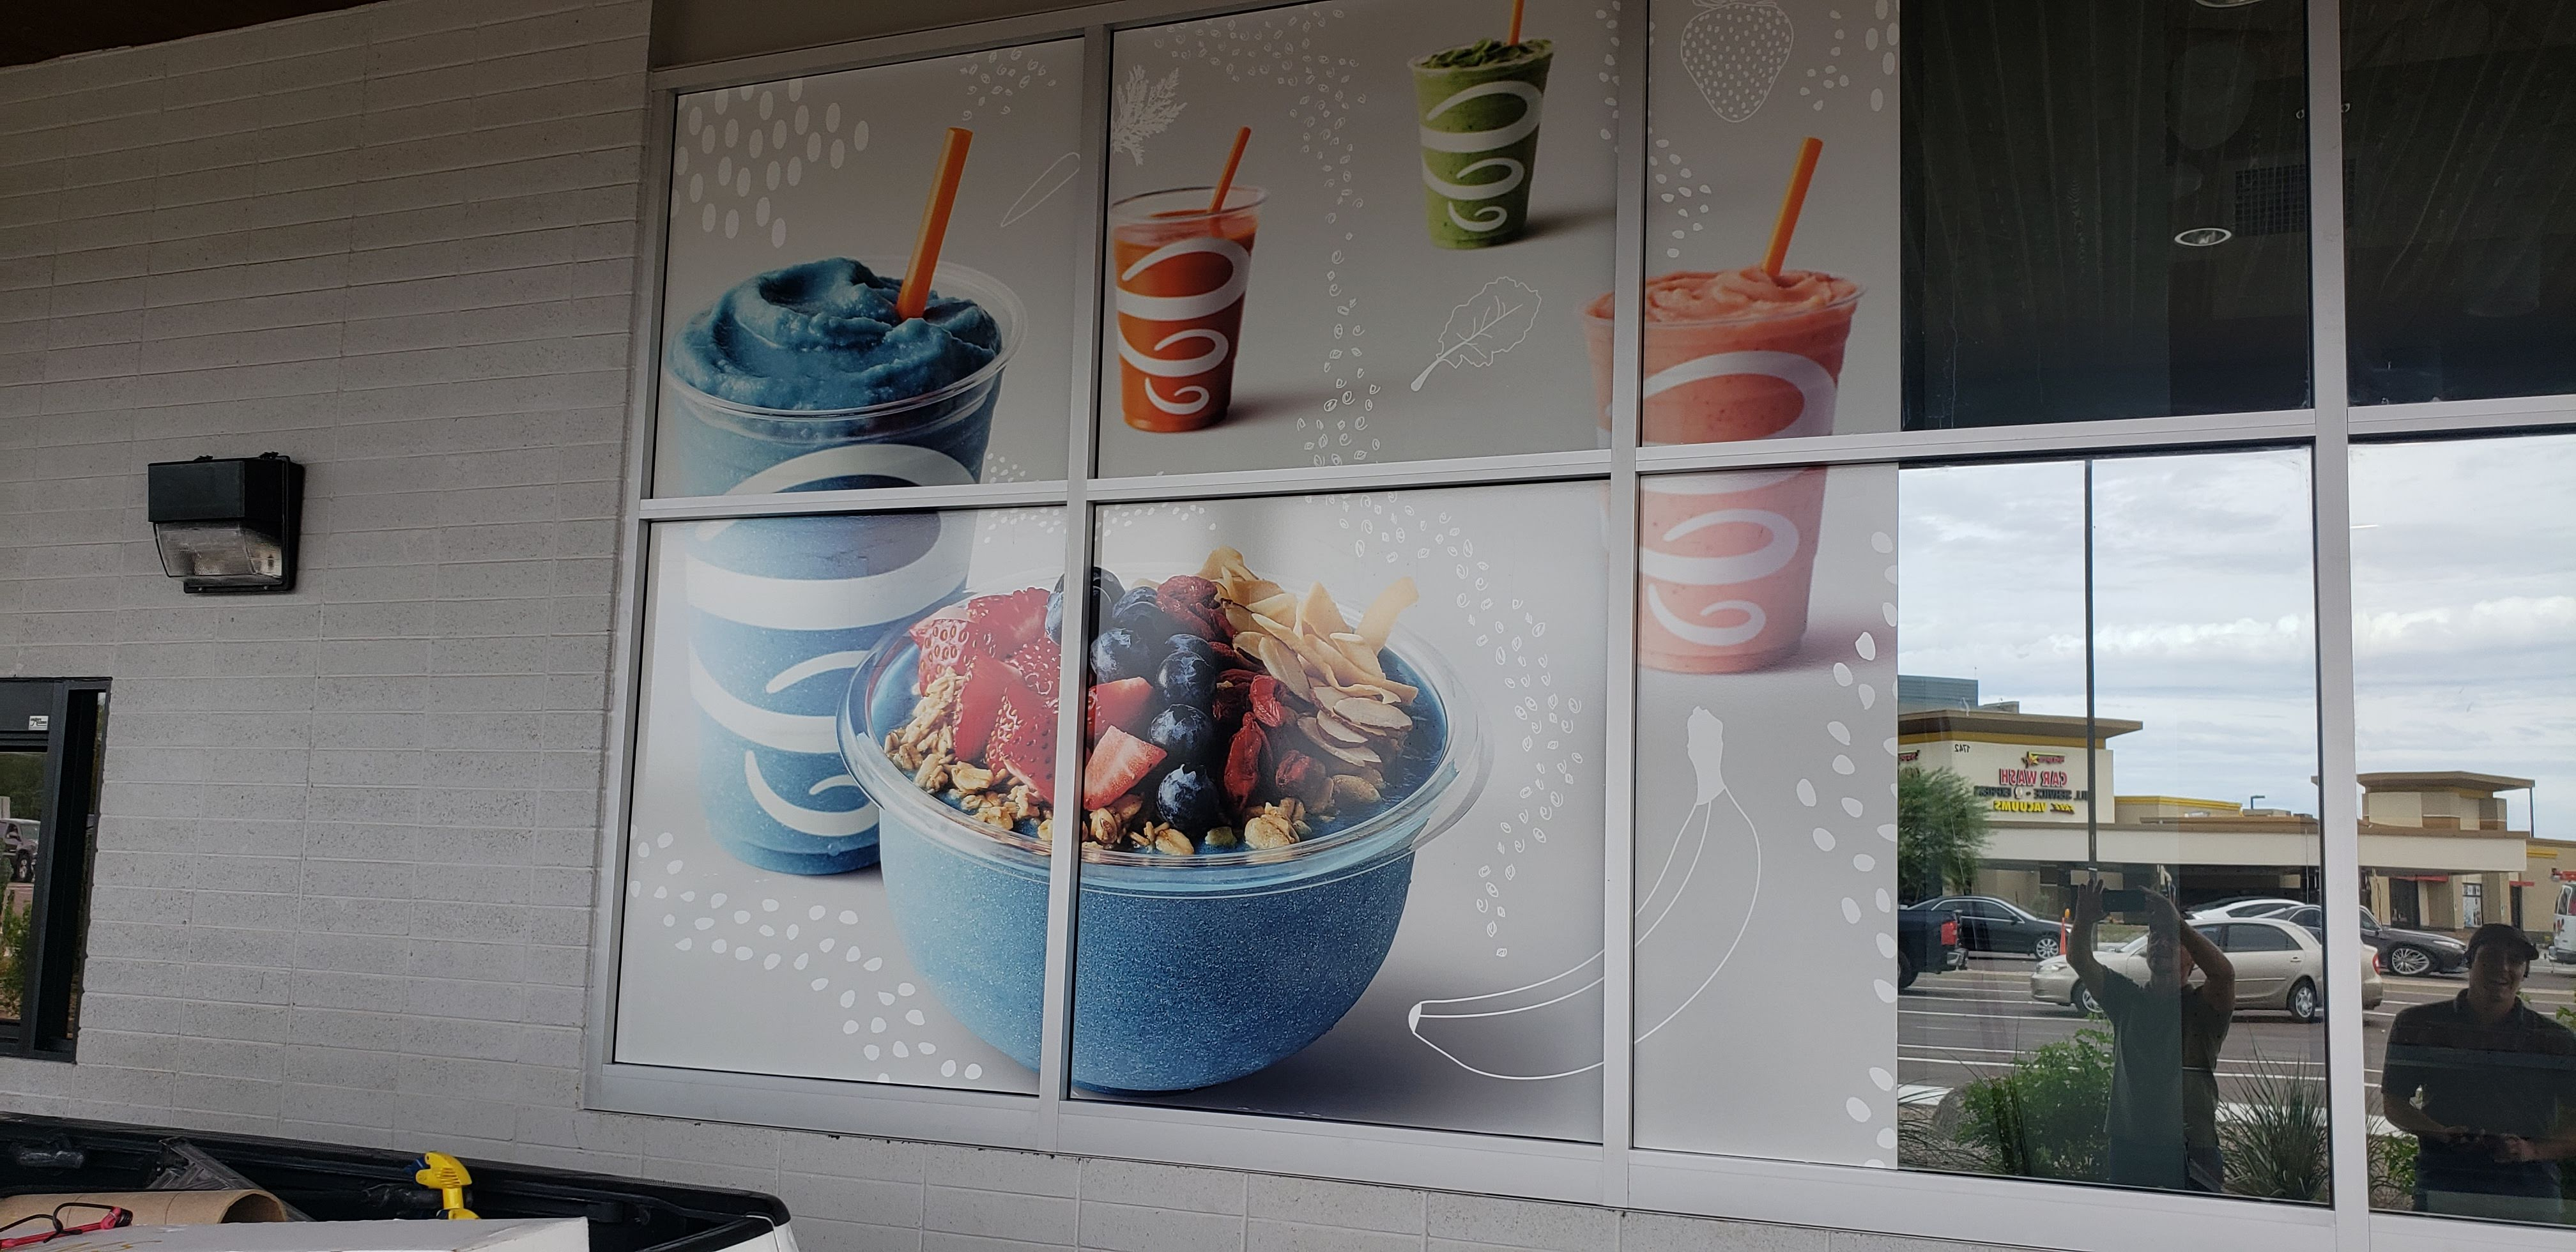 Smoothie shop with custom decorative film design printed out and applied to window. Phoenix Arizona